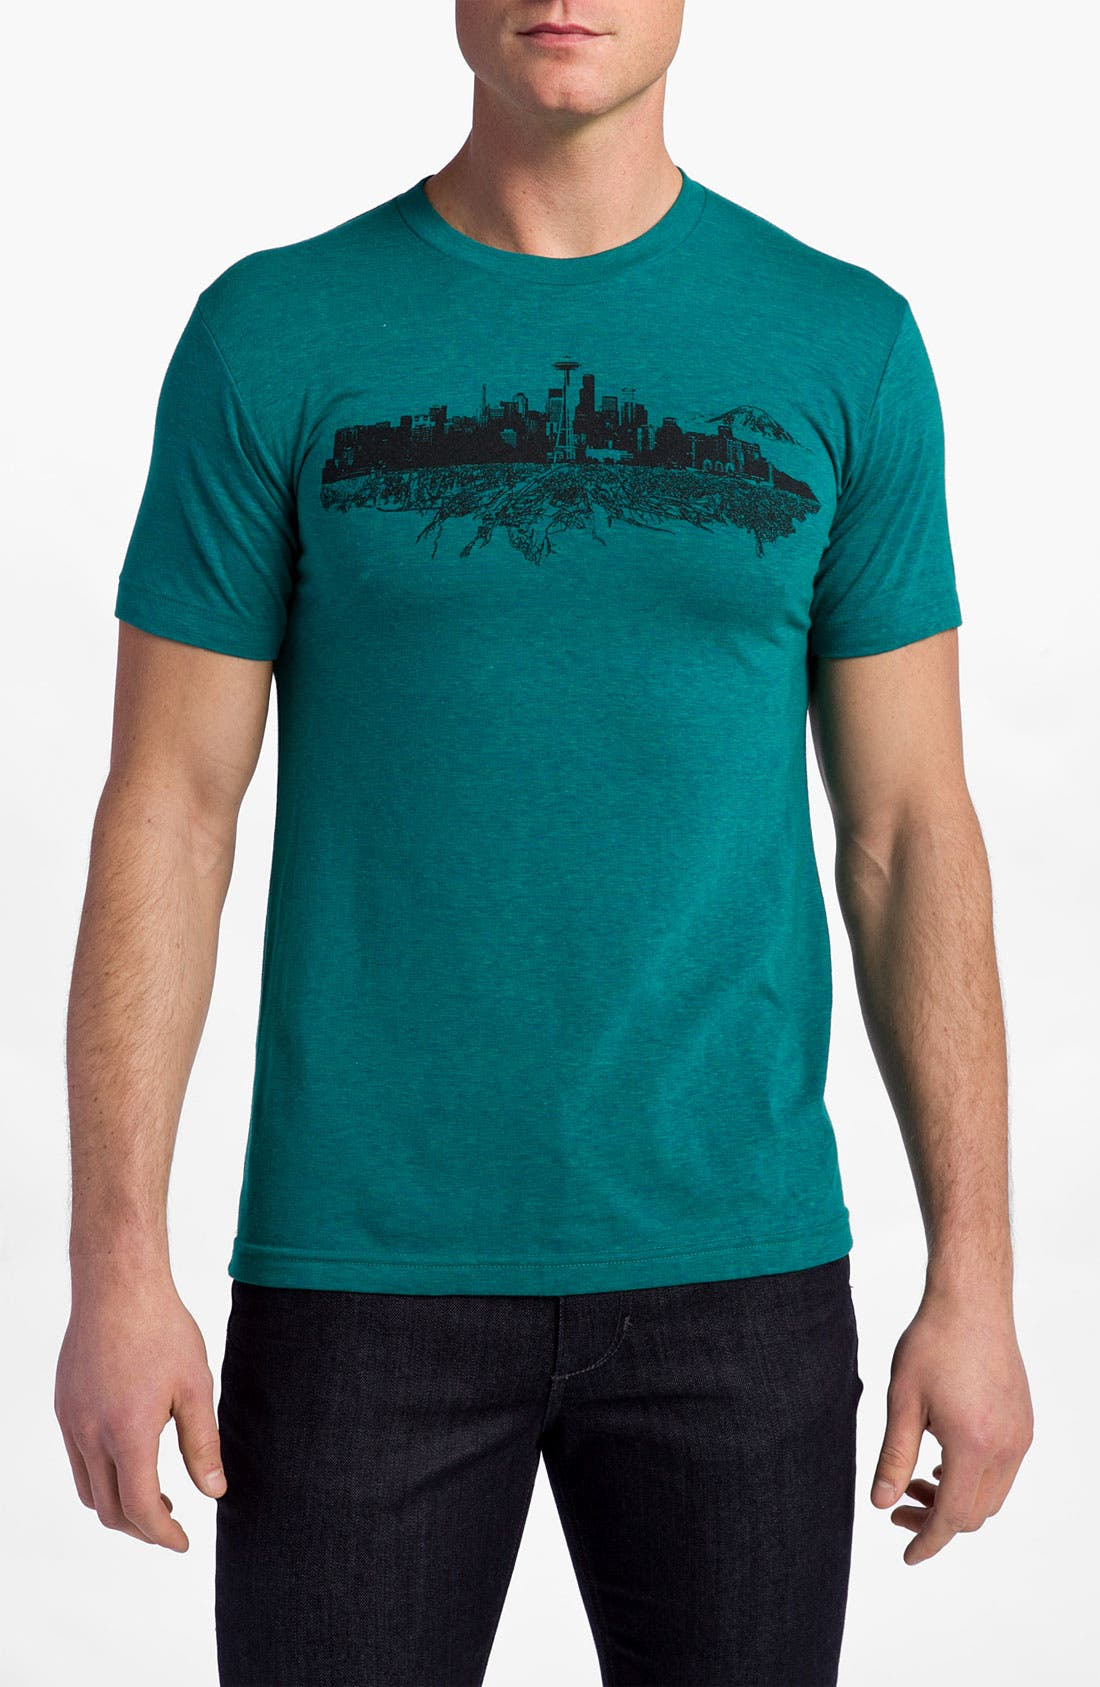 Alternate Image 1 Selected - Casual Industrees 'Seattle' T-Shirt